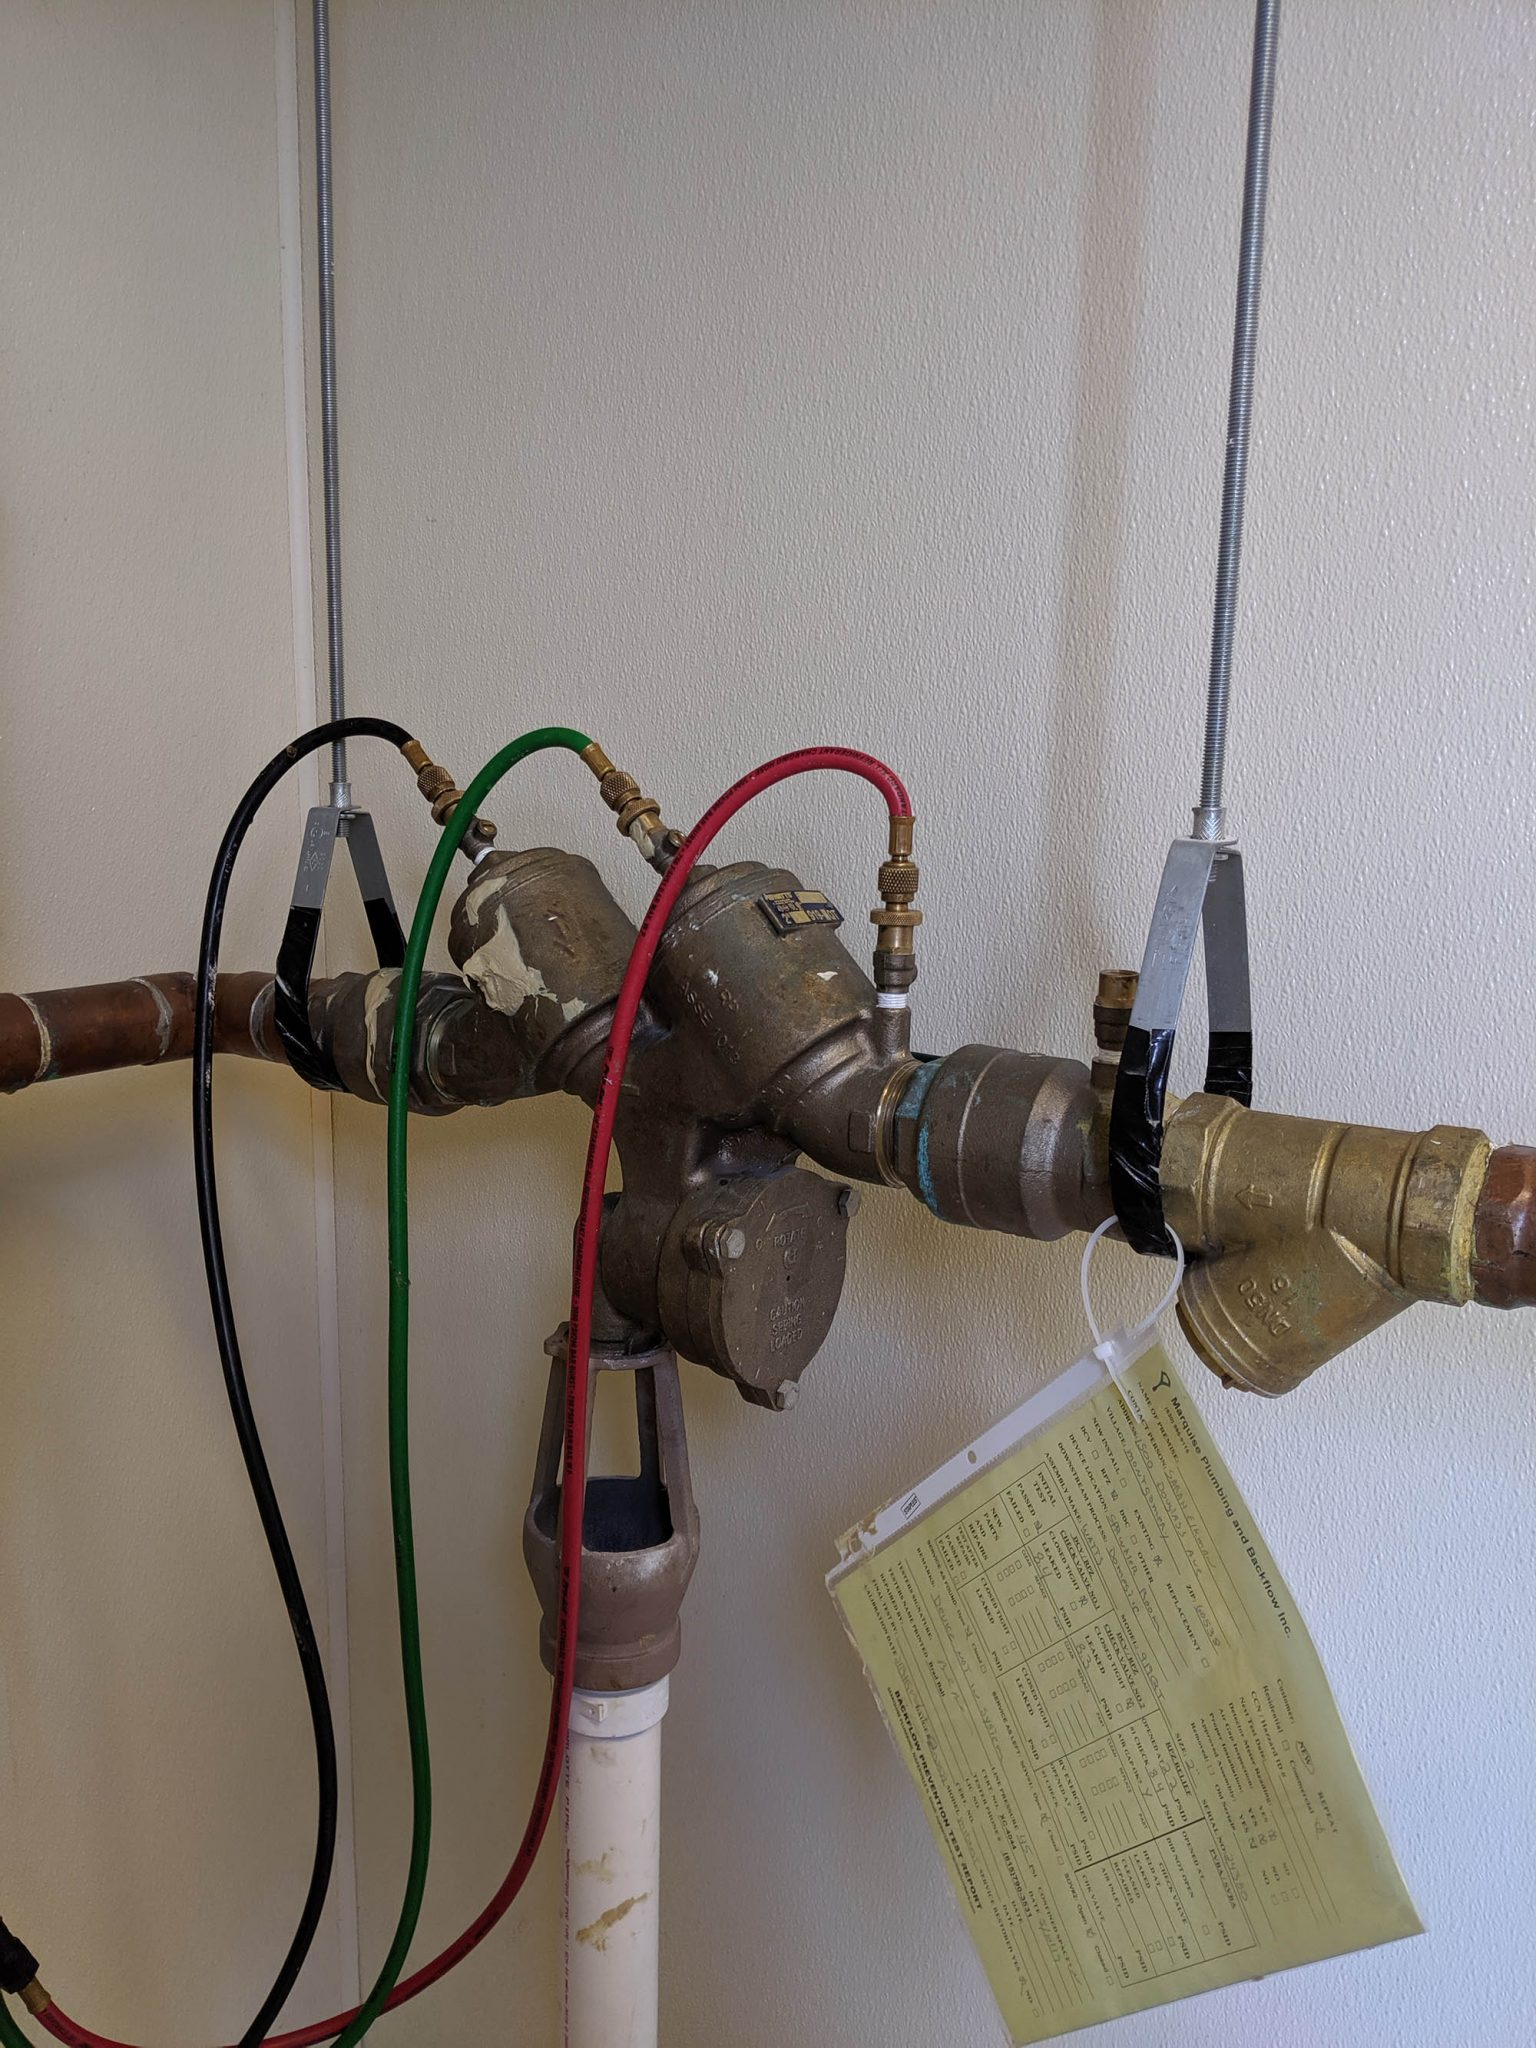 Drain Cleaning, Clogged Pipes, Plumber Service Mokena IL - RW Dowding Plumbing